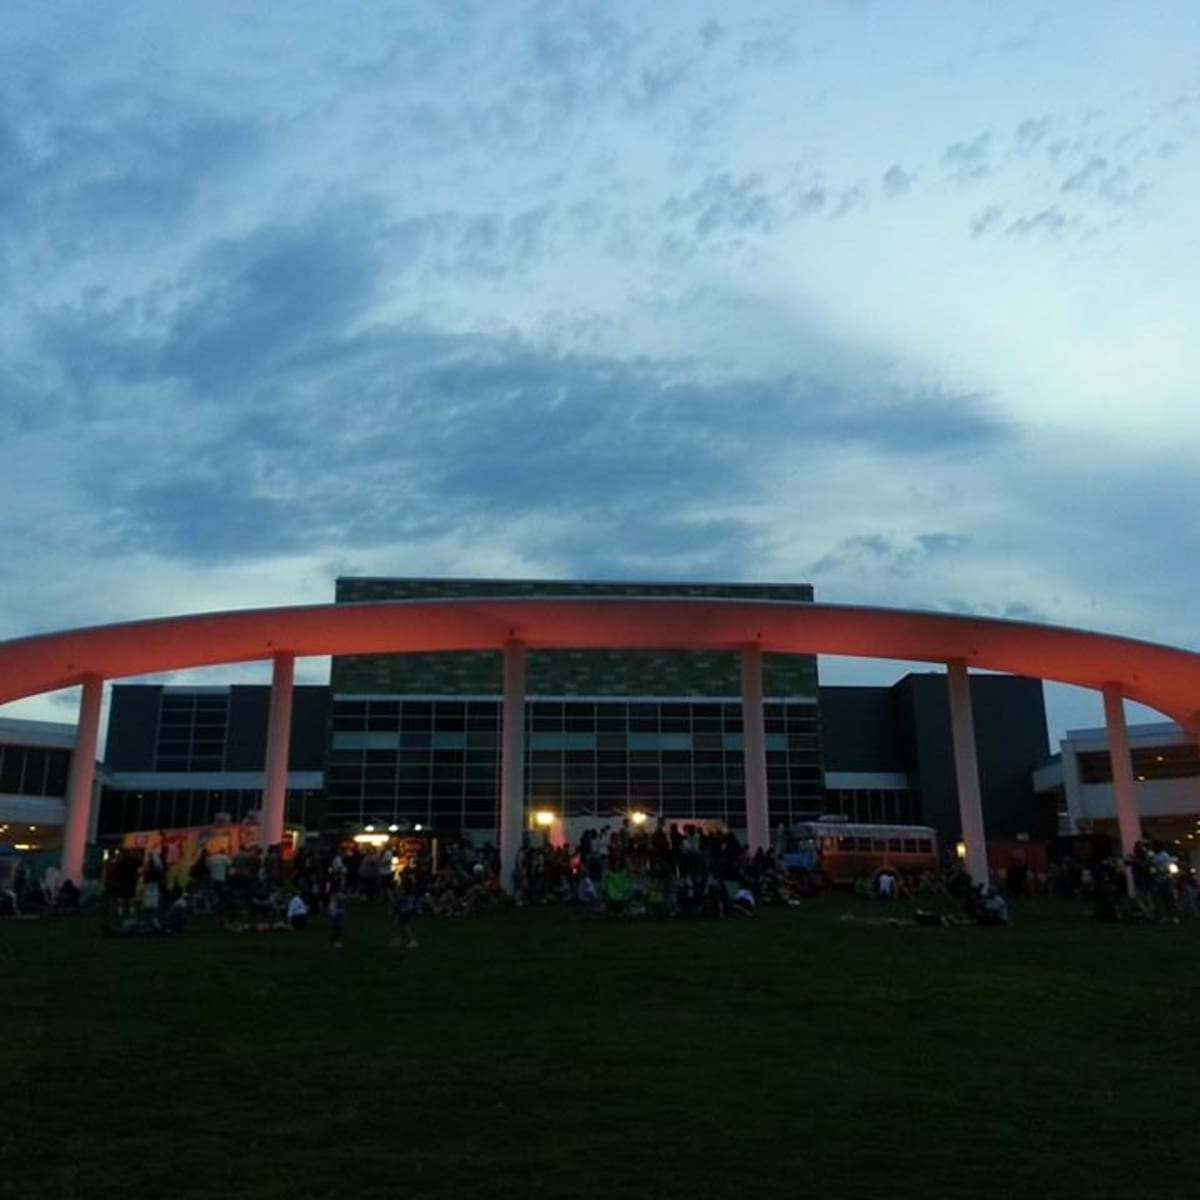 The Long Center at night for Trailer Food Tuesdays